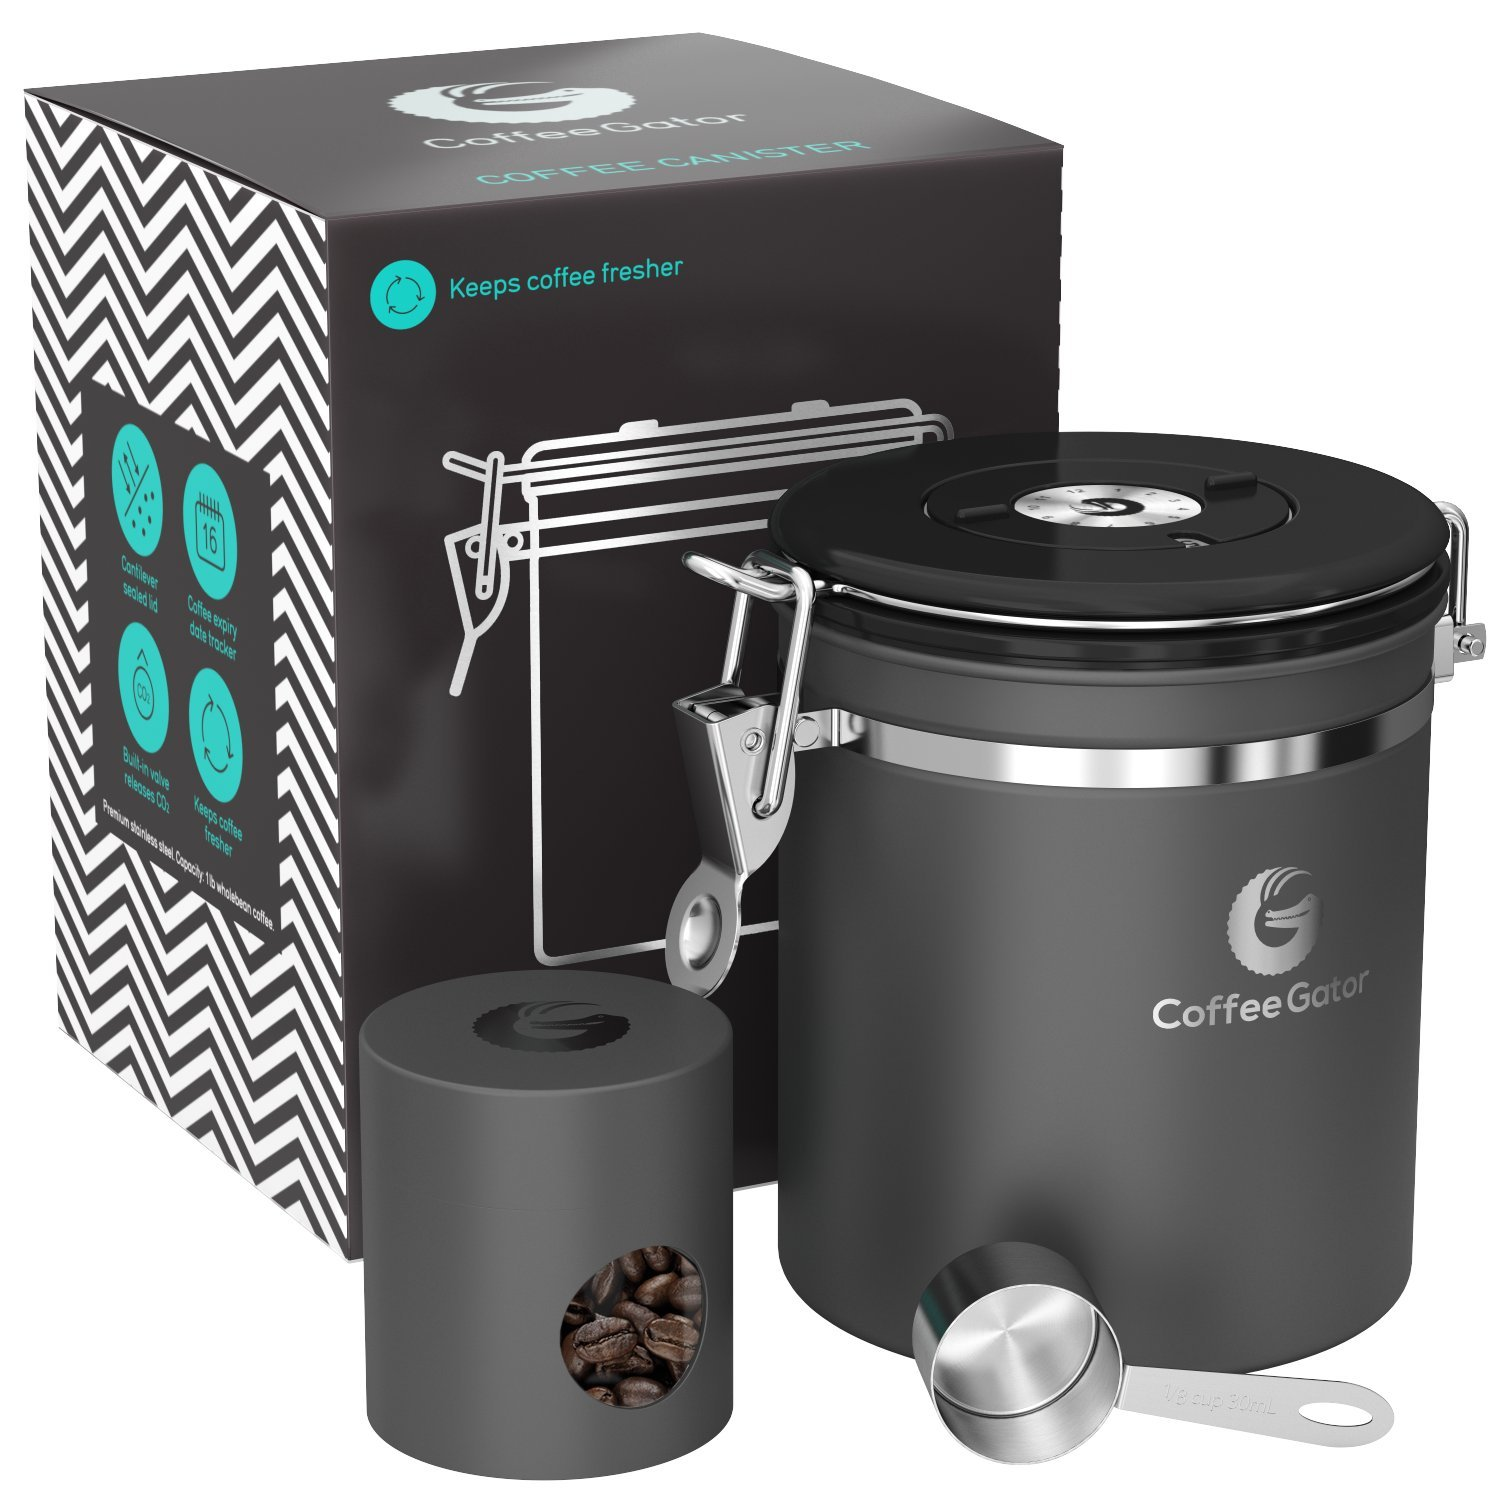 Coffee Gator Stainless Steel Container - Canister with co2 Valve, Scoop and Travel Jar - Medium, Grey